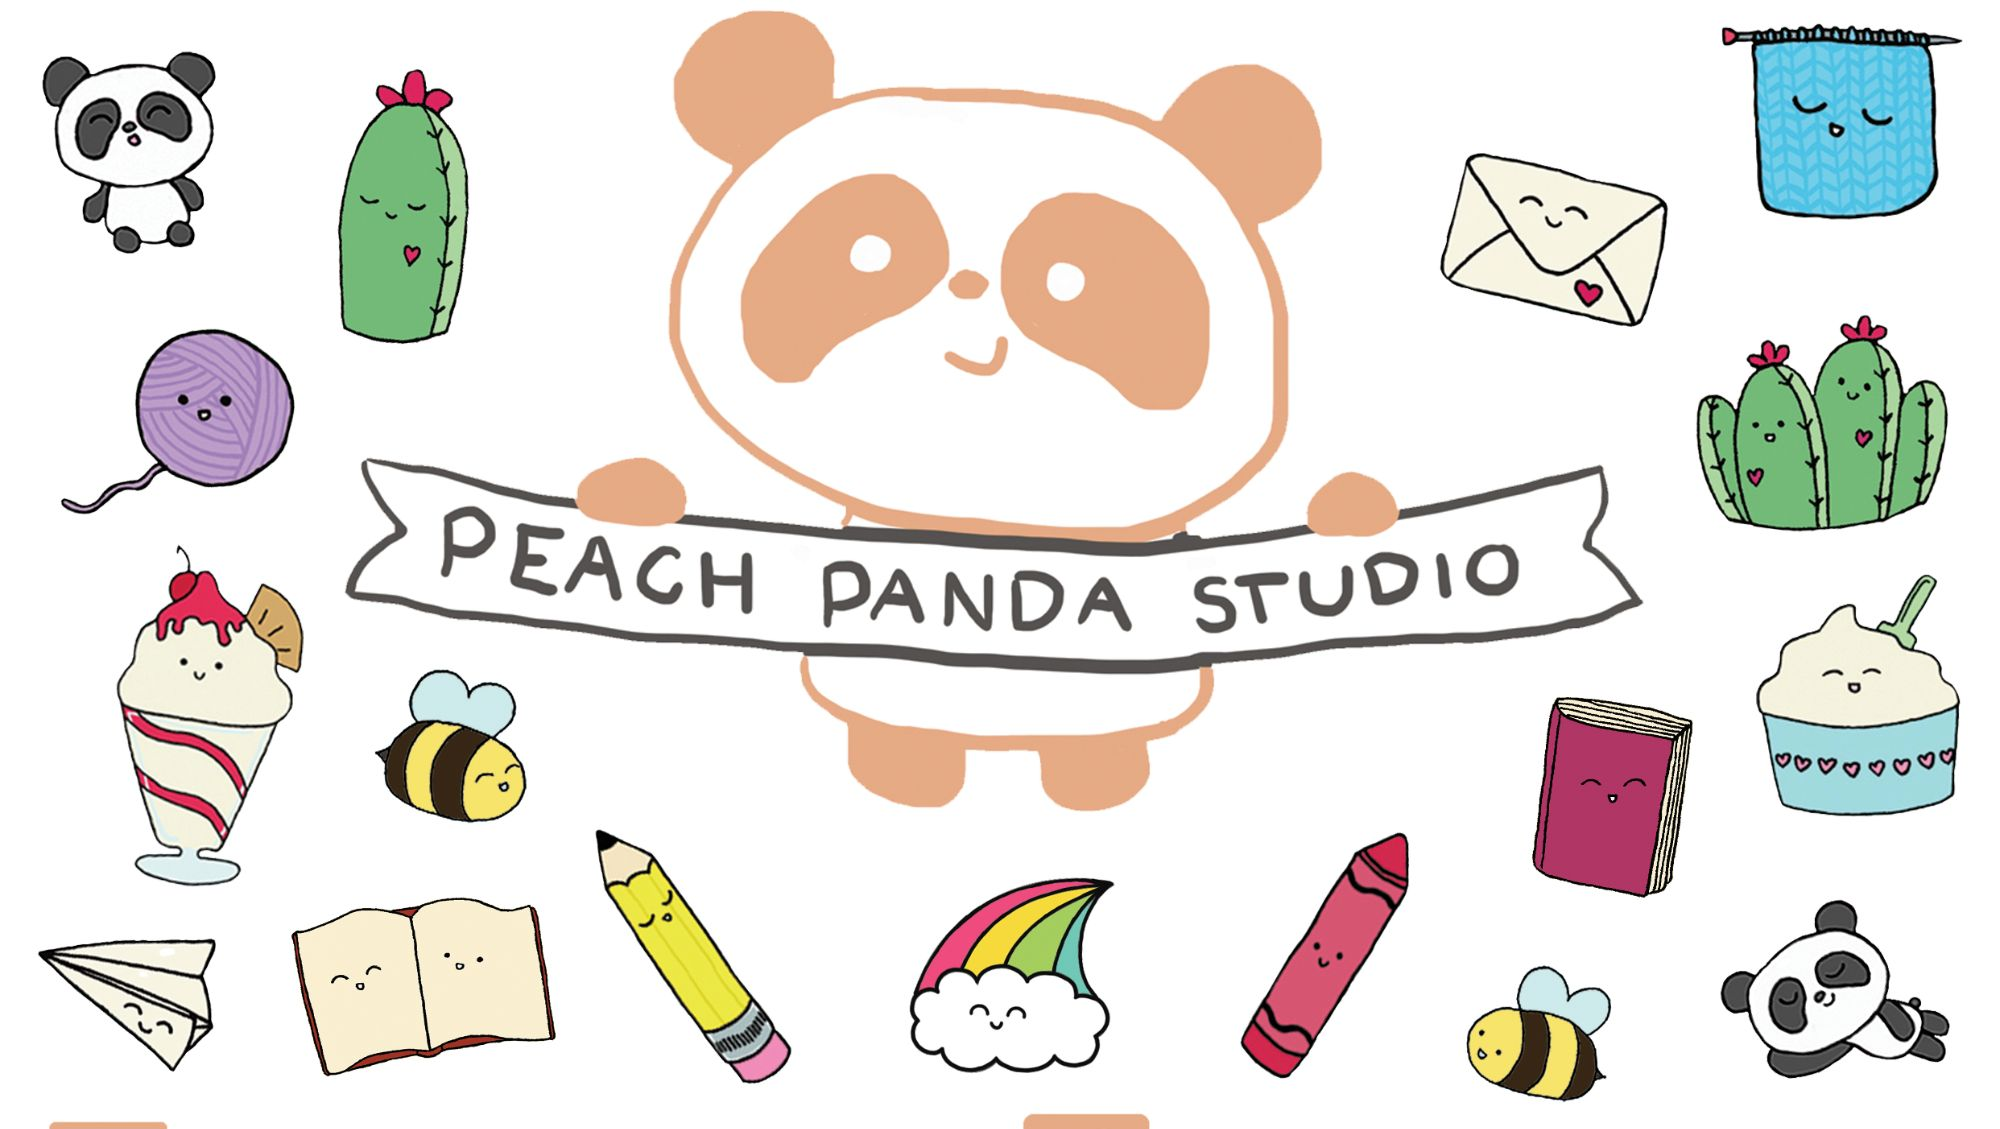 Peach Panda Studio logo surrounded by smiling cartoon inanimate objects